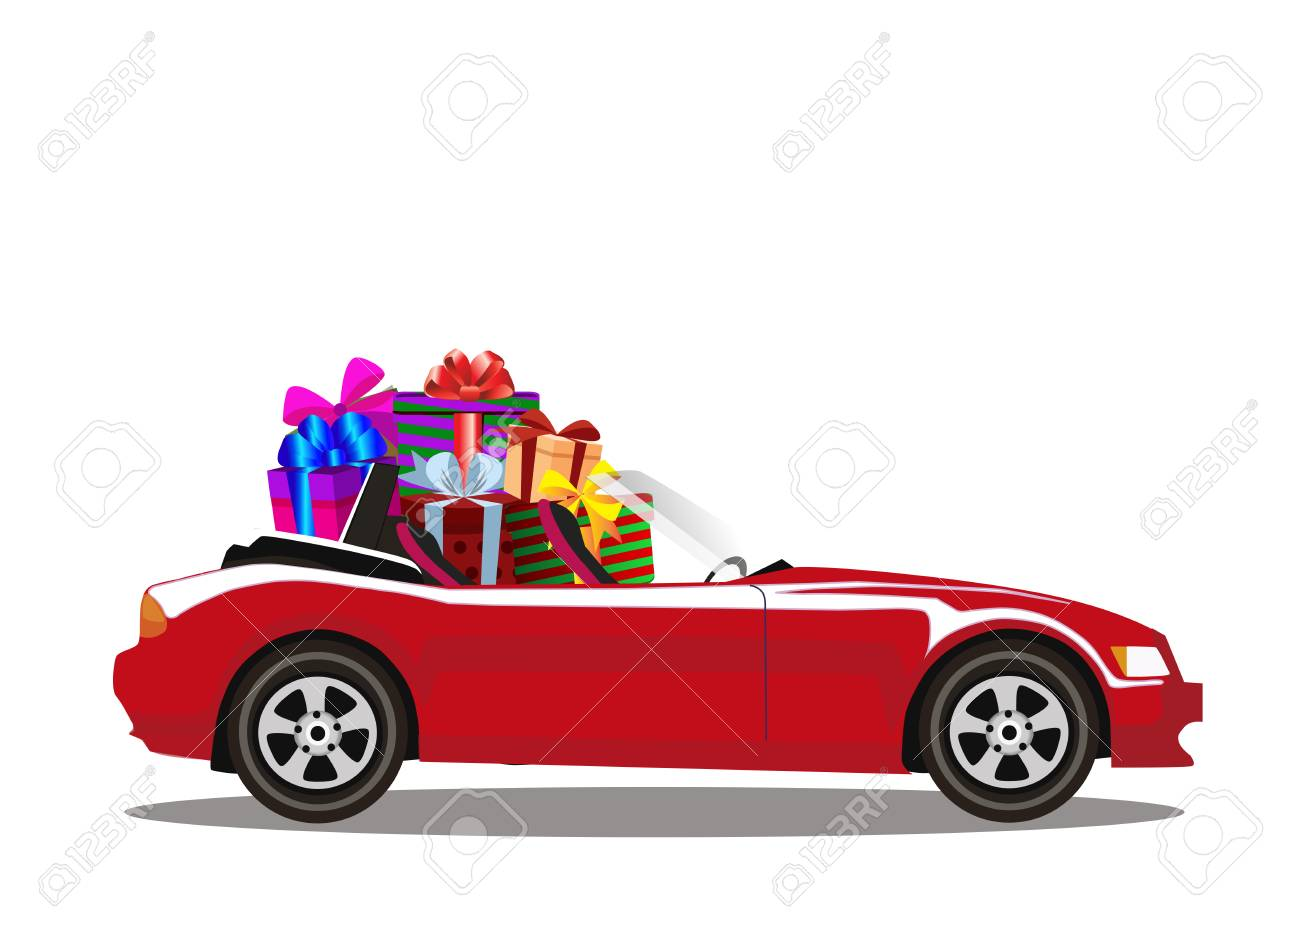 Red Modern Cartoon Cabriolet Car Full Of Gift Boxes Isolated